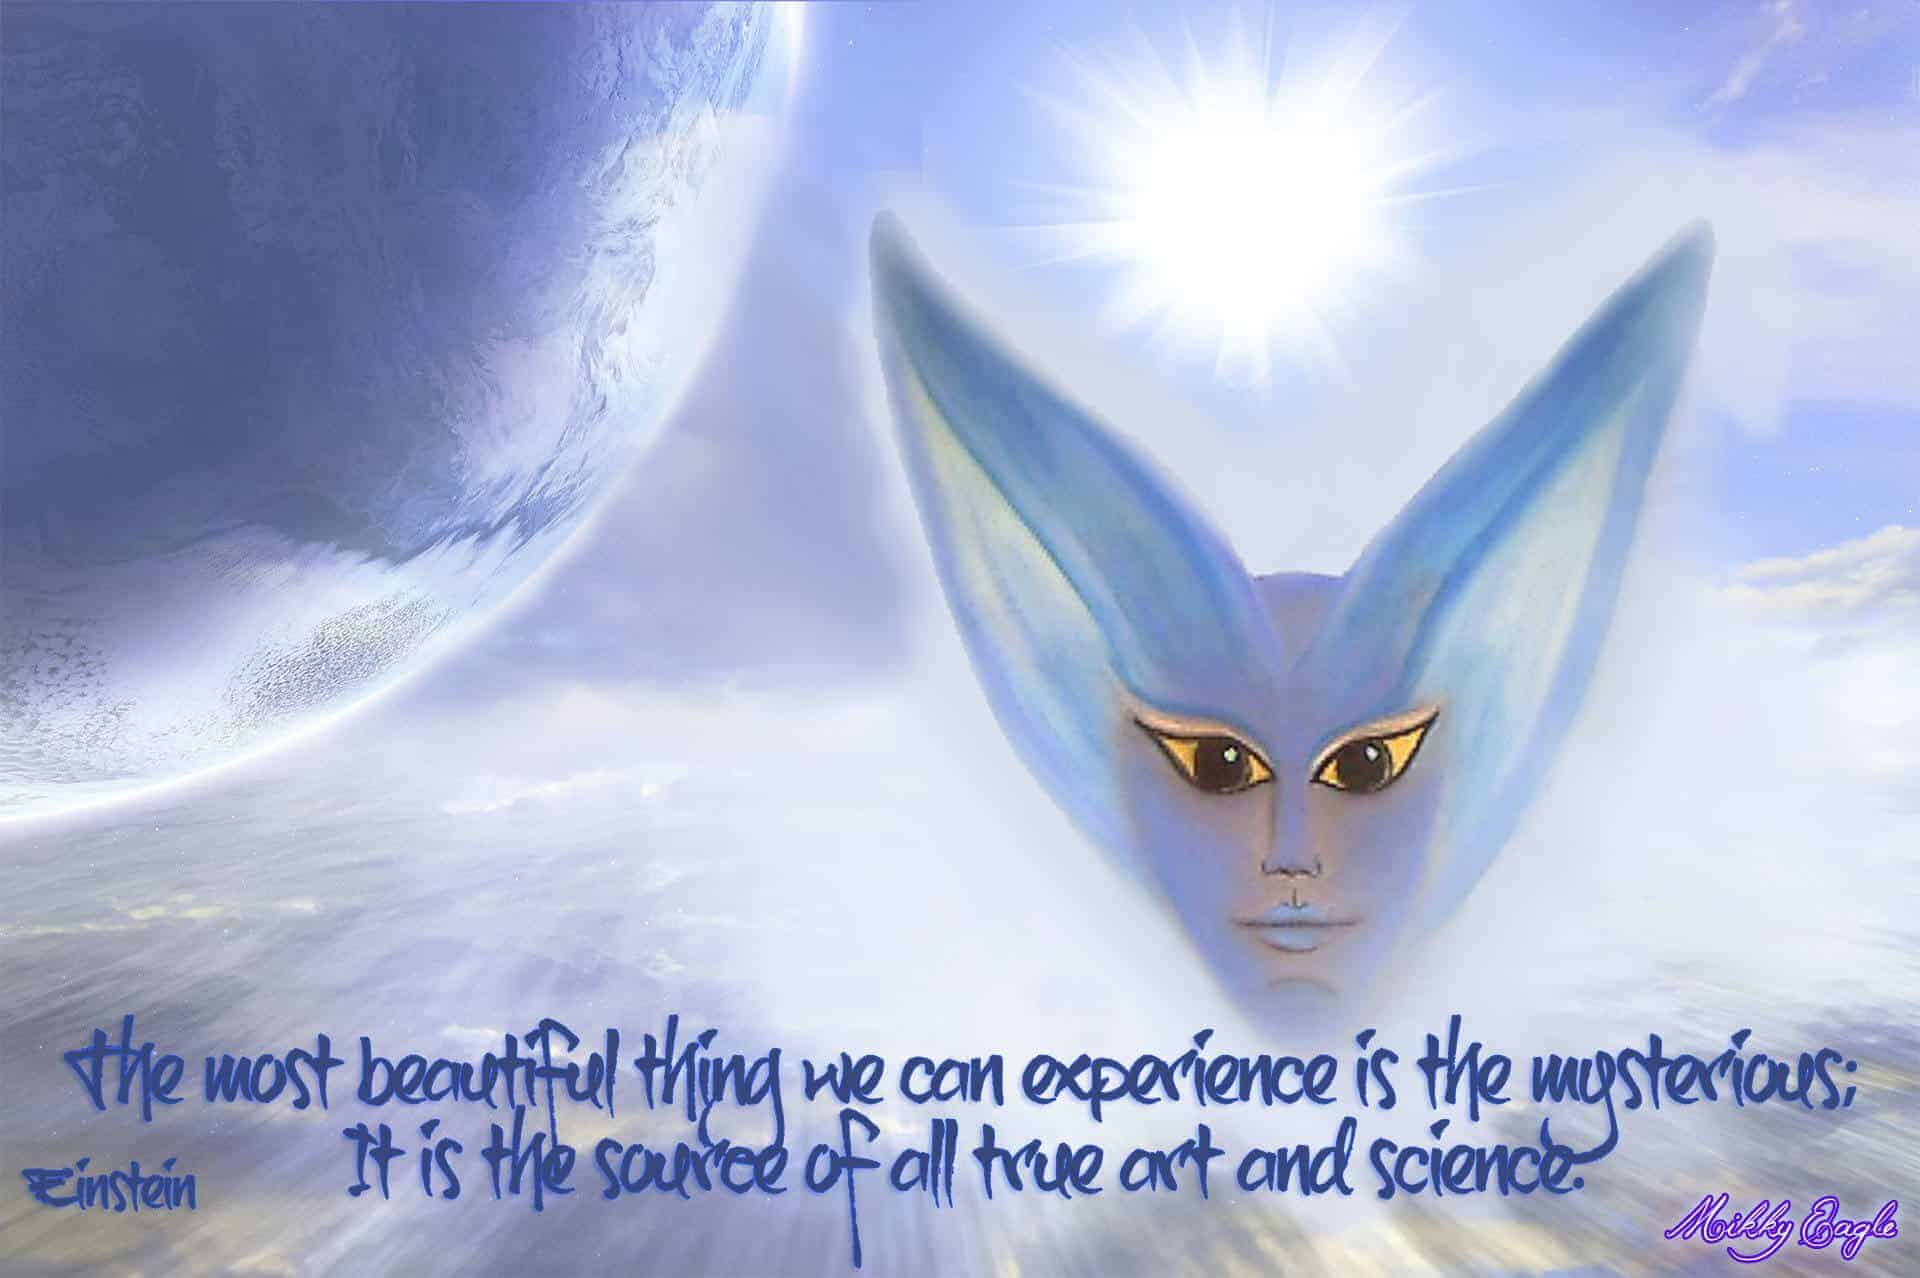 The most beautiful thing we can experience is the mysterious; It is the source of all true art and science.